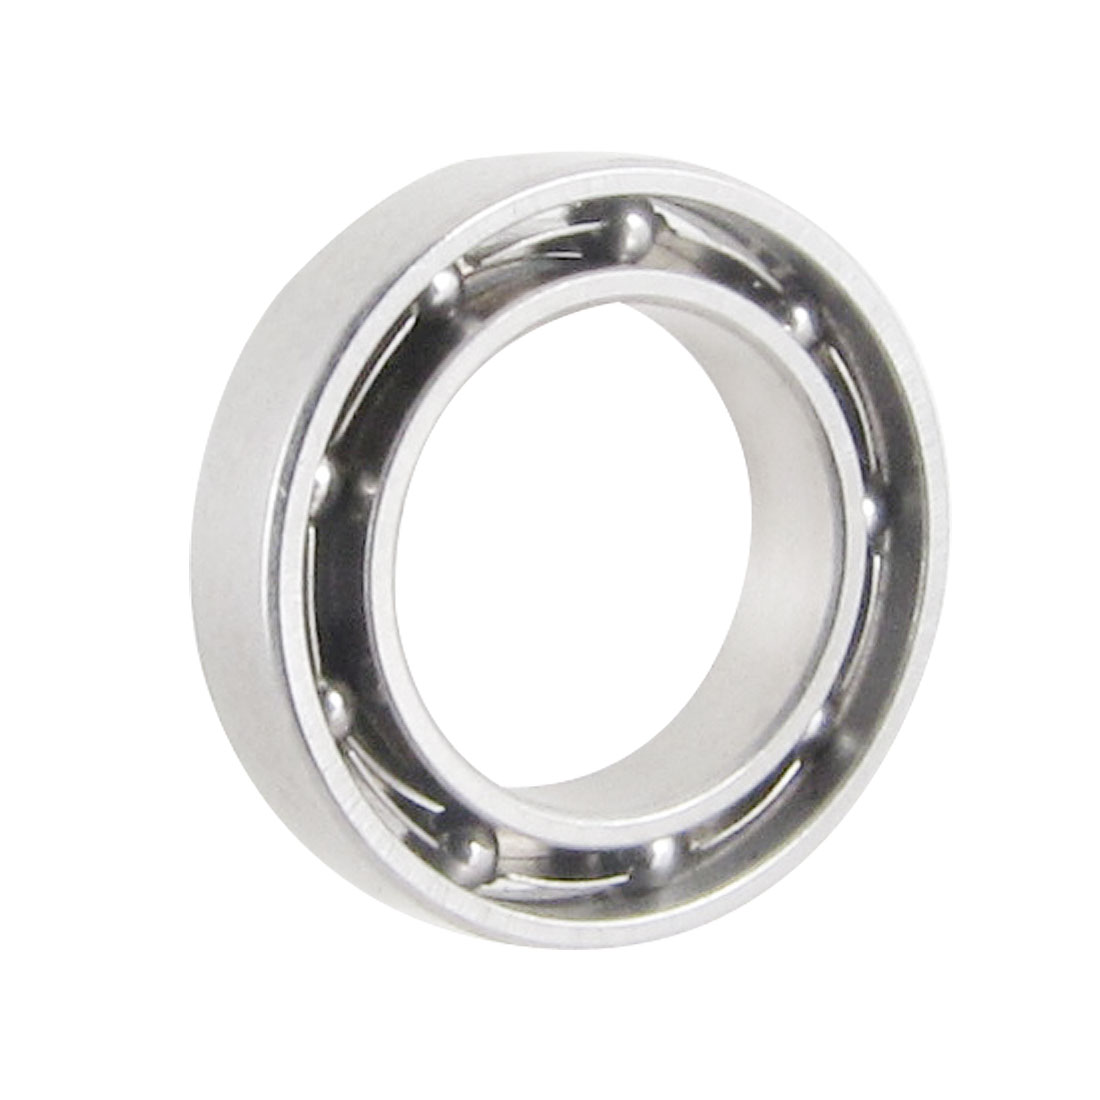 Stainless Steel Open Type Deep Groove Ball Bearing 7mmx11mmx2.5mm